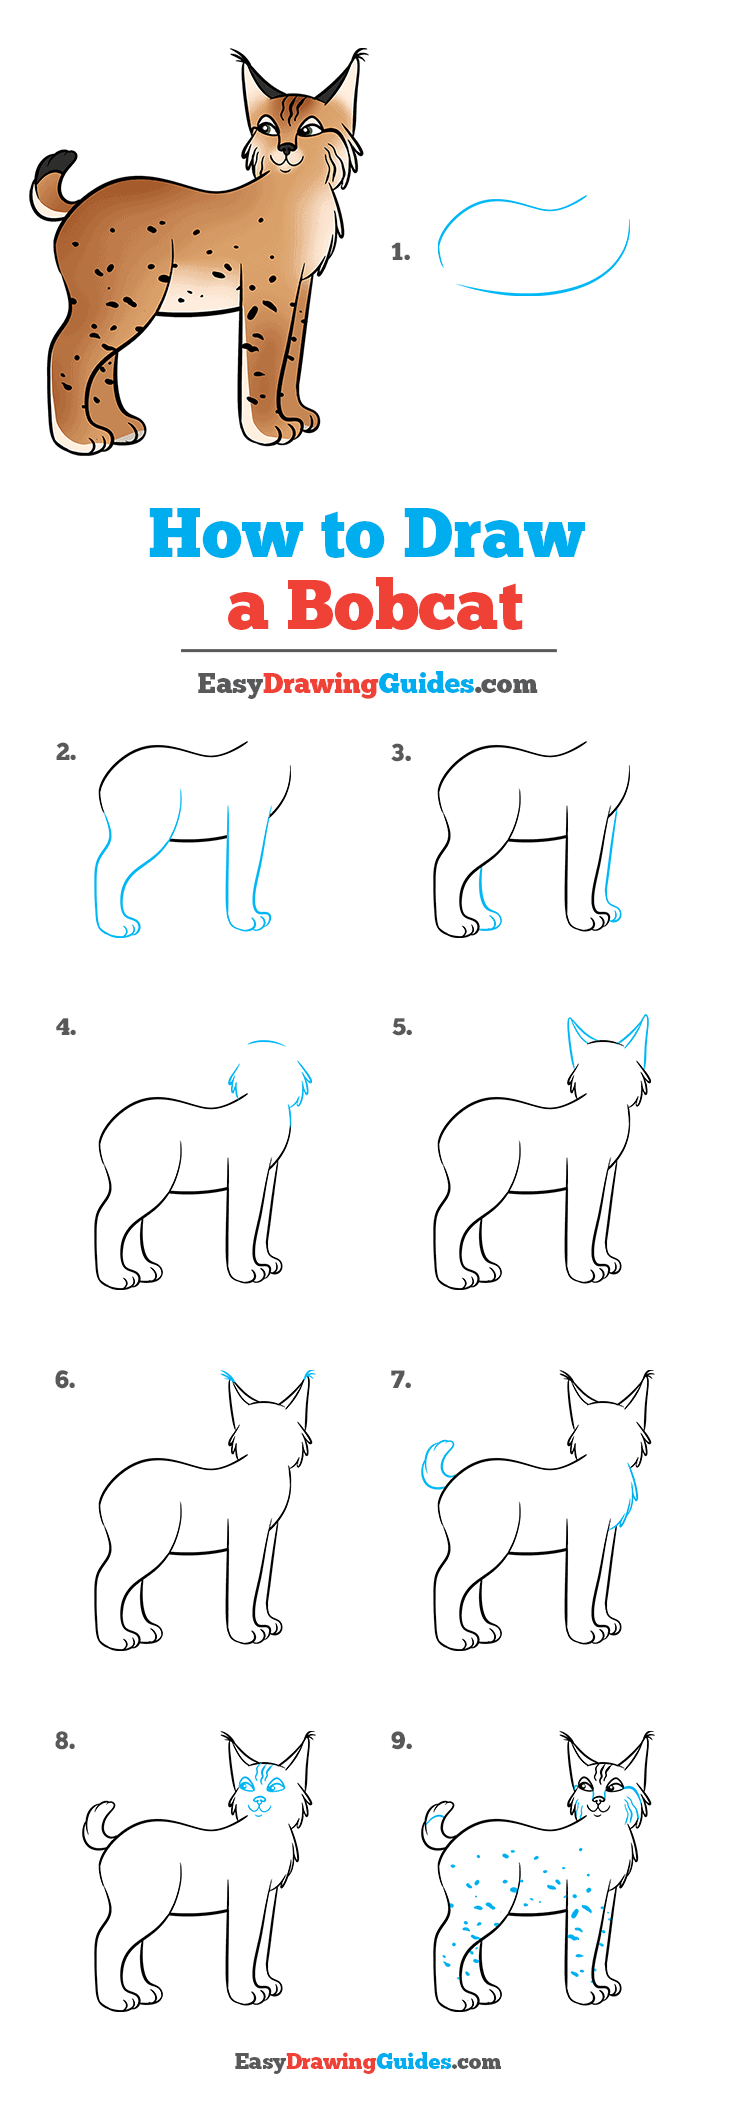 How to Draw Bobcat